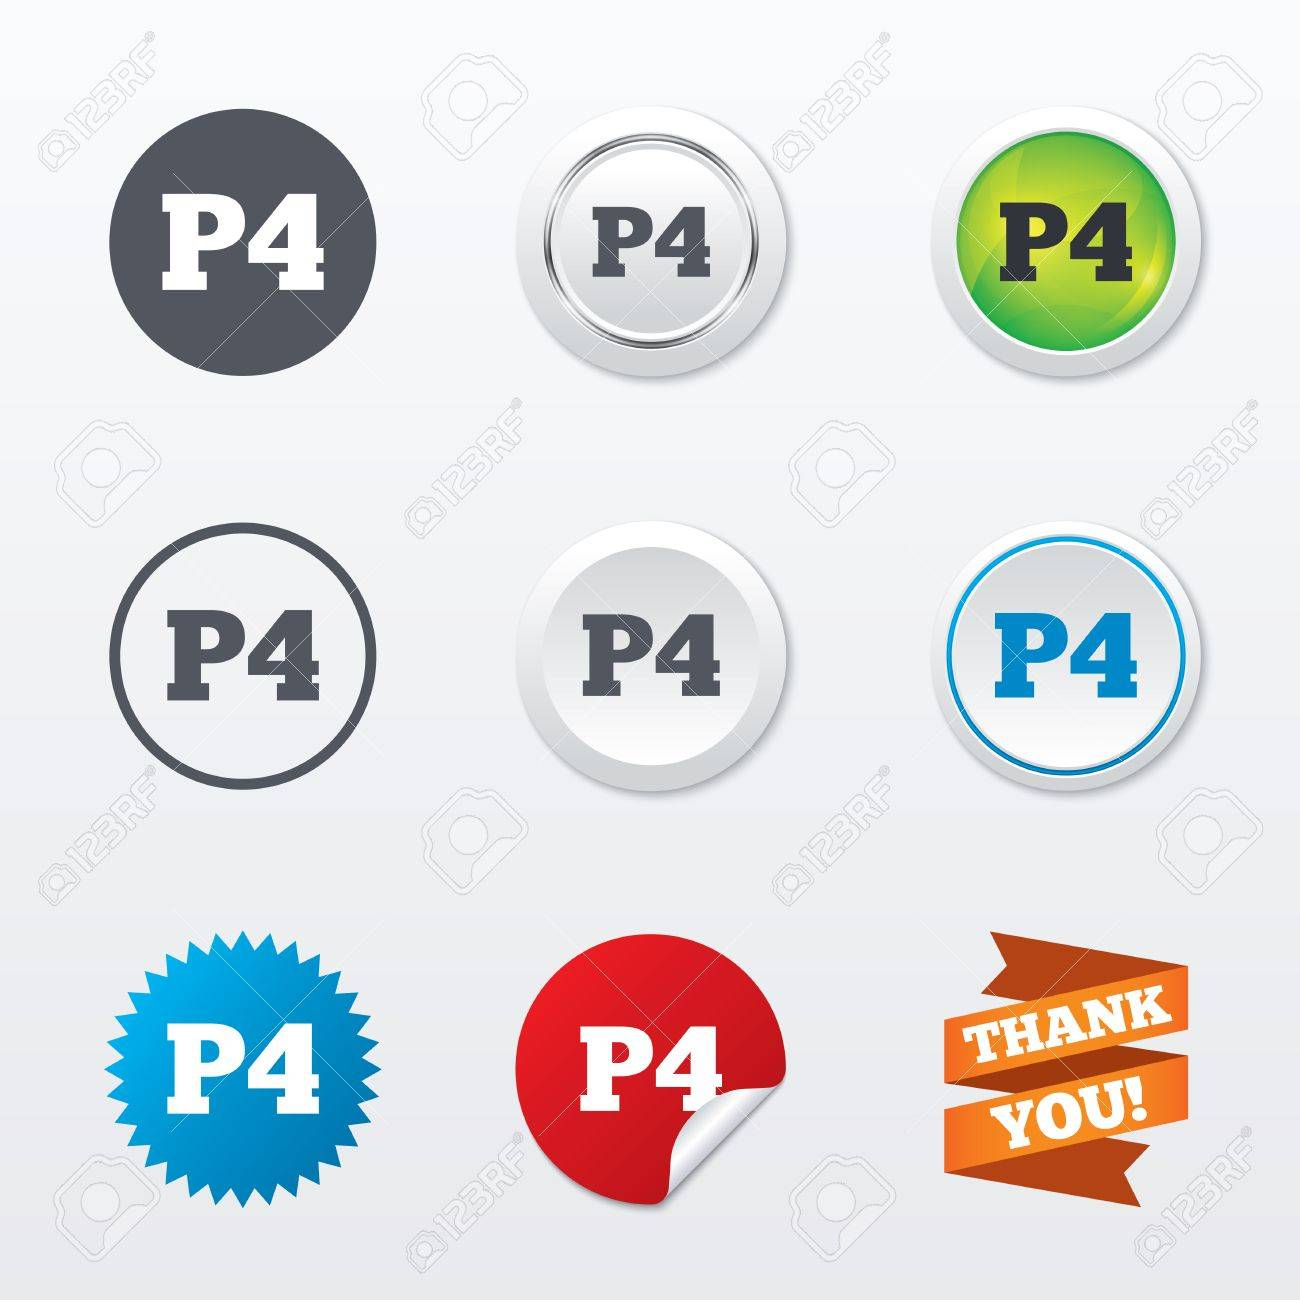 Parking Fourth Floor Sign Icon Car P4 Symbol Circle Concept Buttons Metal